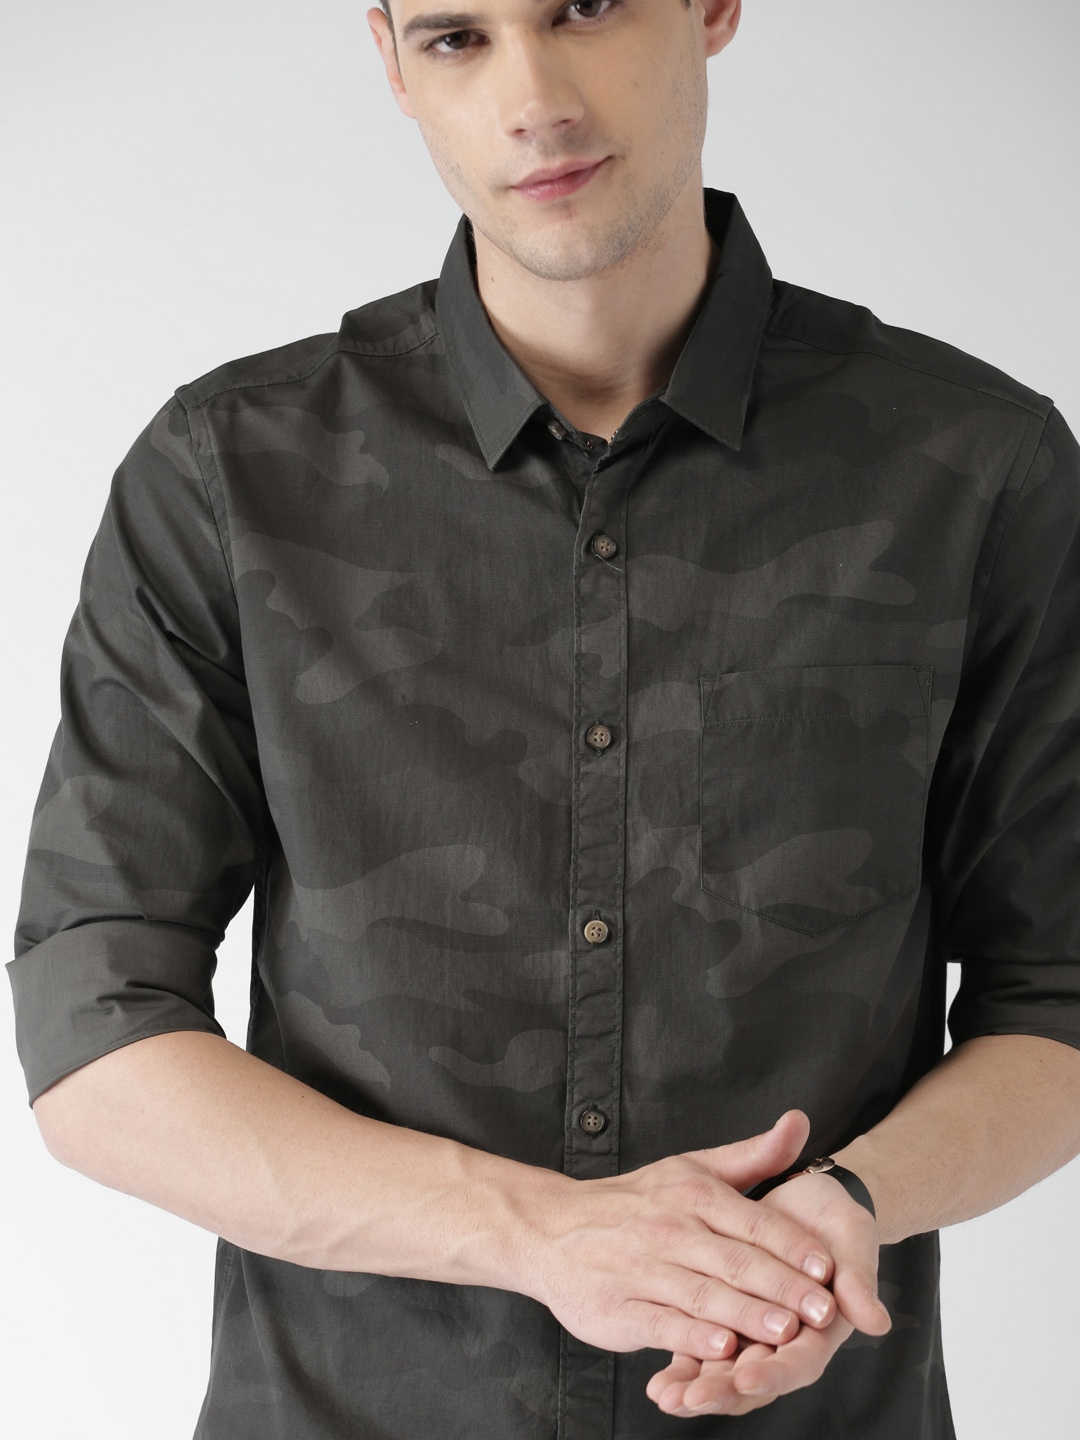 wholesale sales good selling most desirable fashion HIGHLANDER Men Olive Green Slim Fit Camouflage Printed Casual Shirt